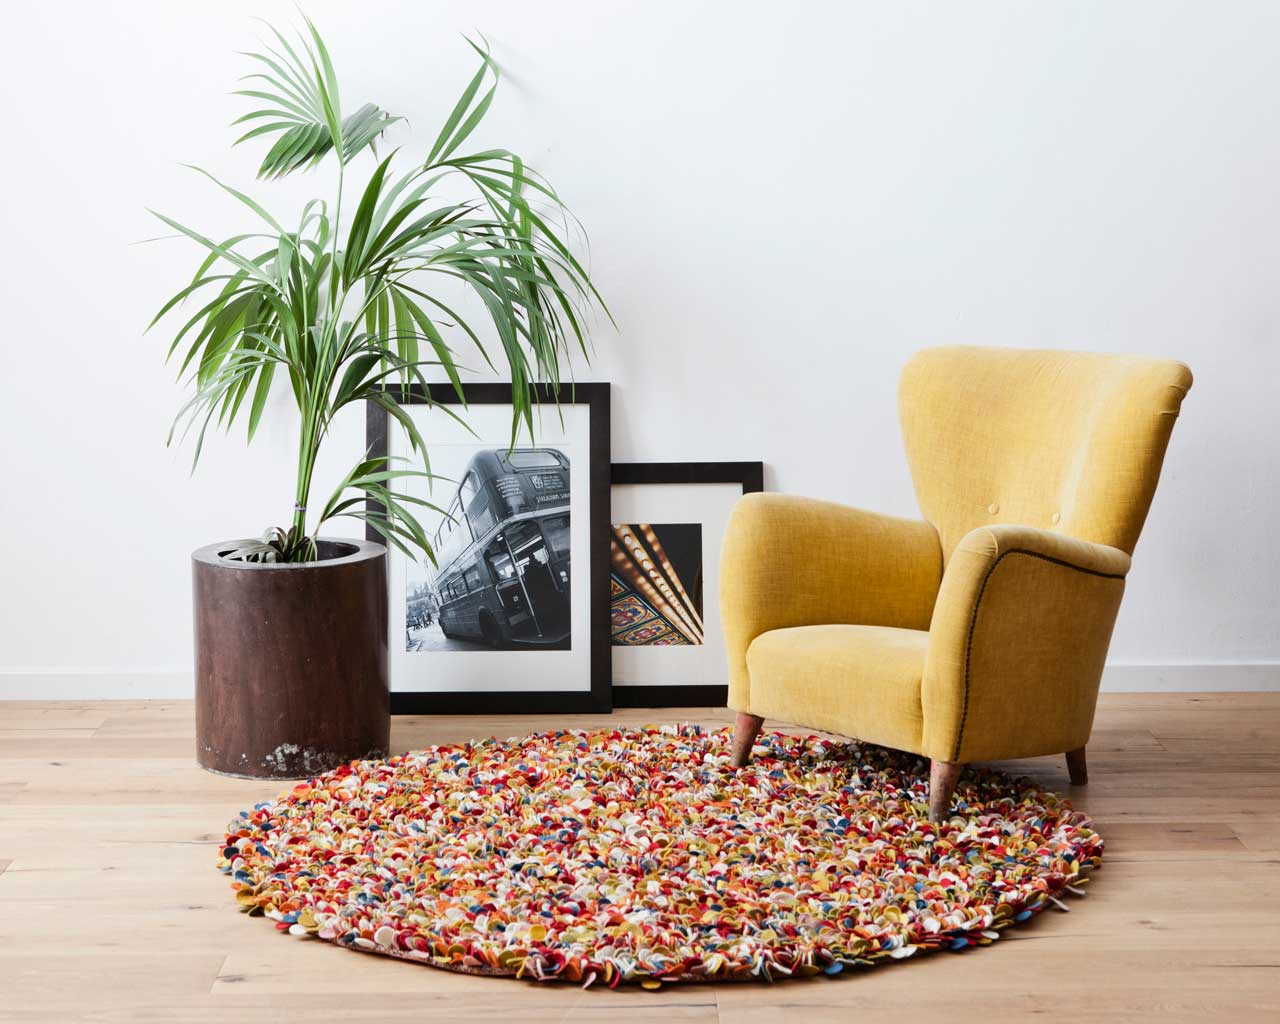 fifties style photo shoot carpet